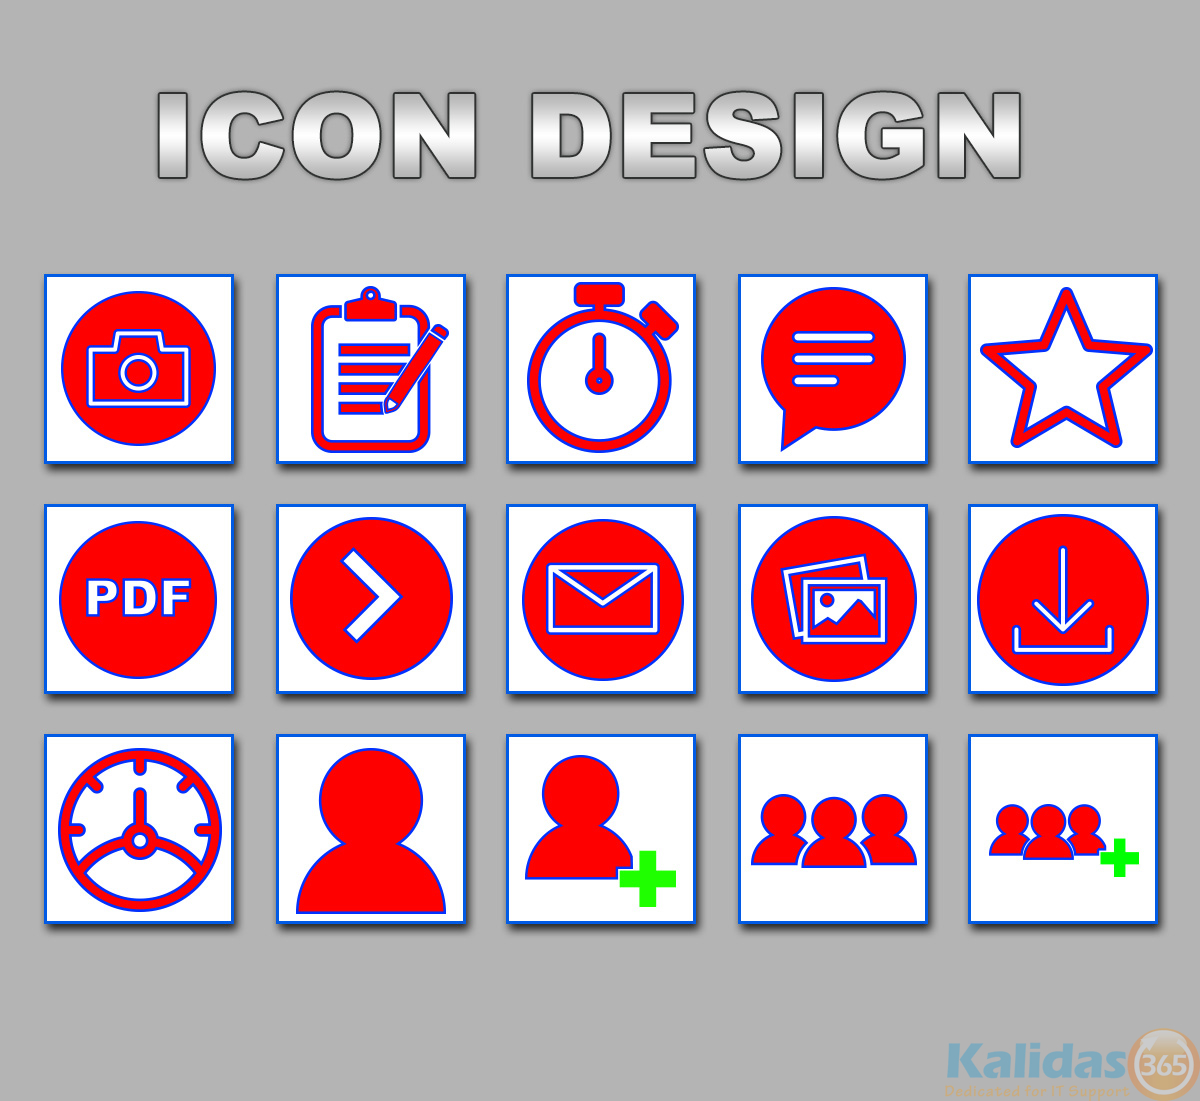 icon design page 2 kalidas365 it solutions